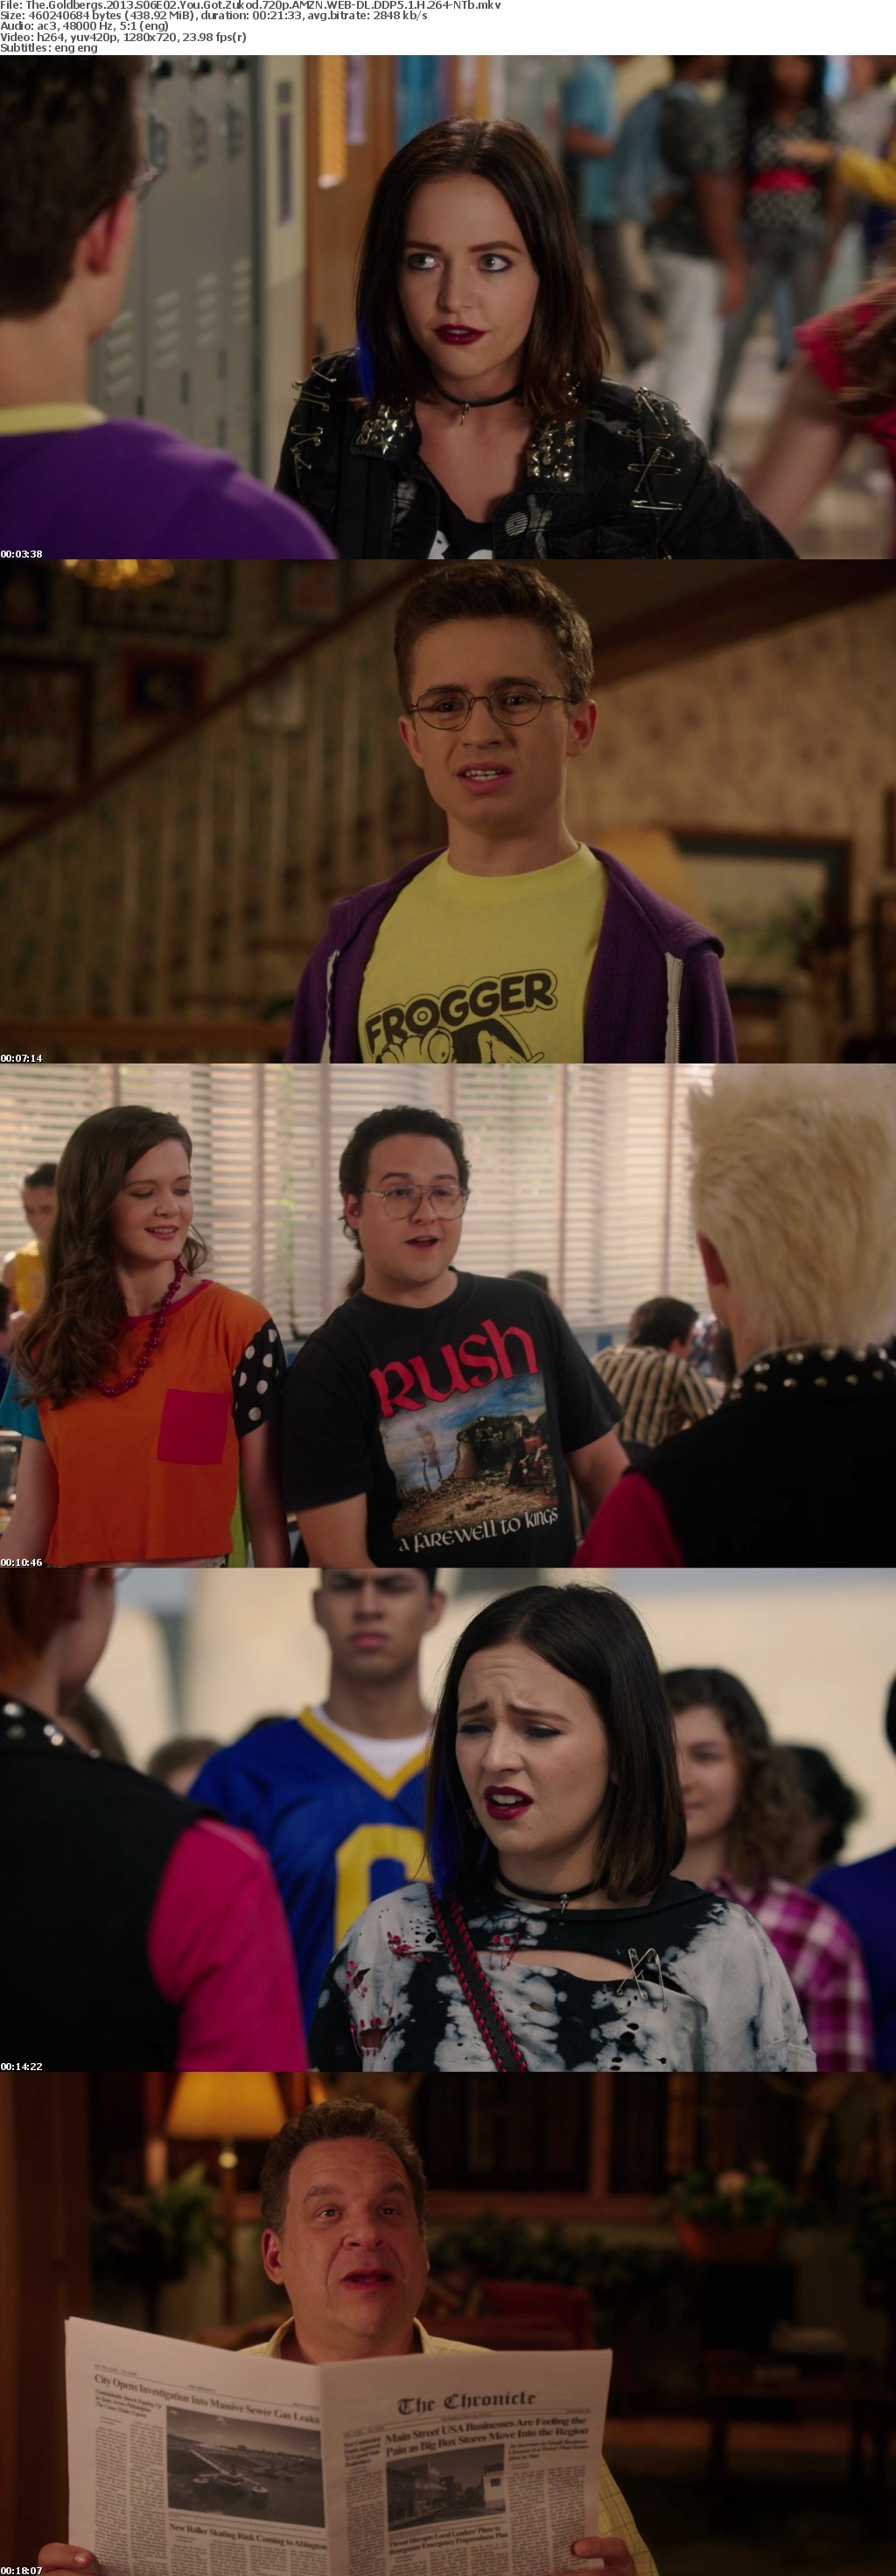 The Goldbergs 2013 S06E02 You Got Zukod 720p AMZN WEB-DL DDP5 1 H 264-NTb